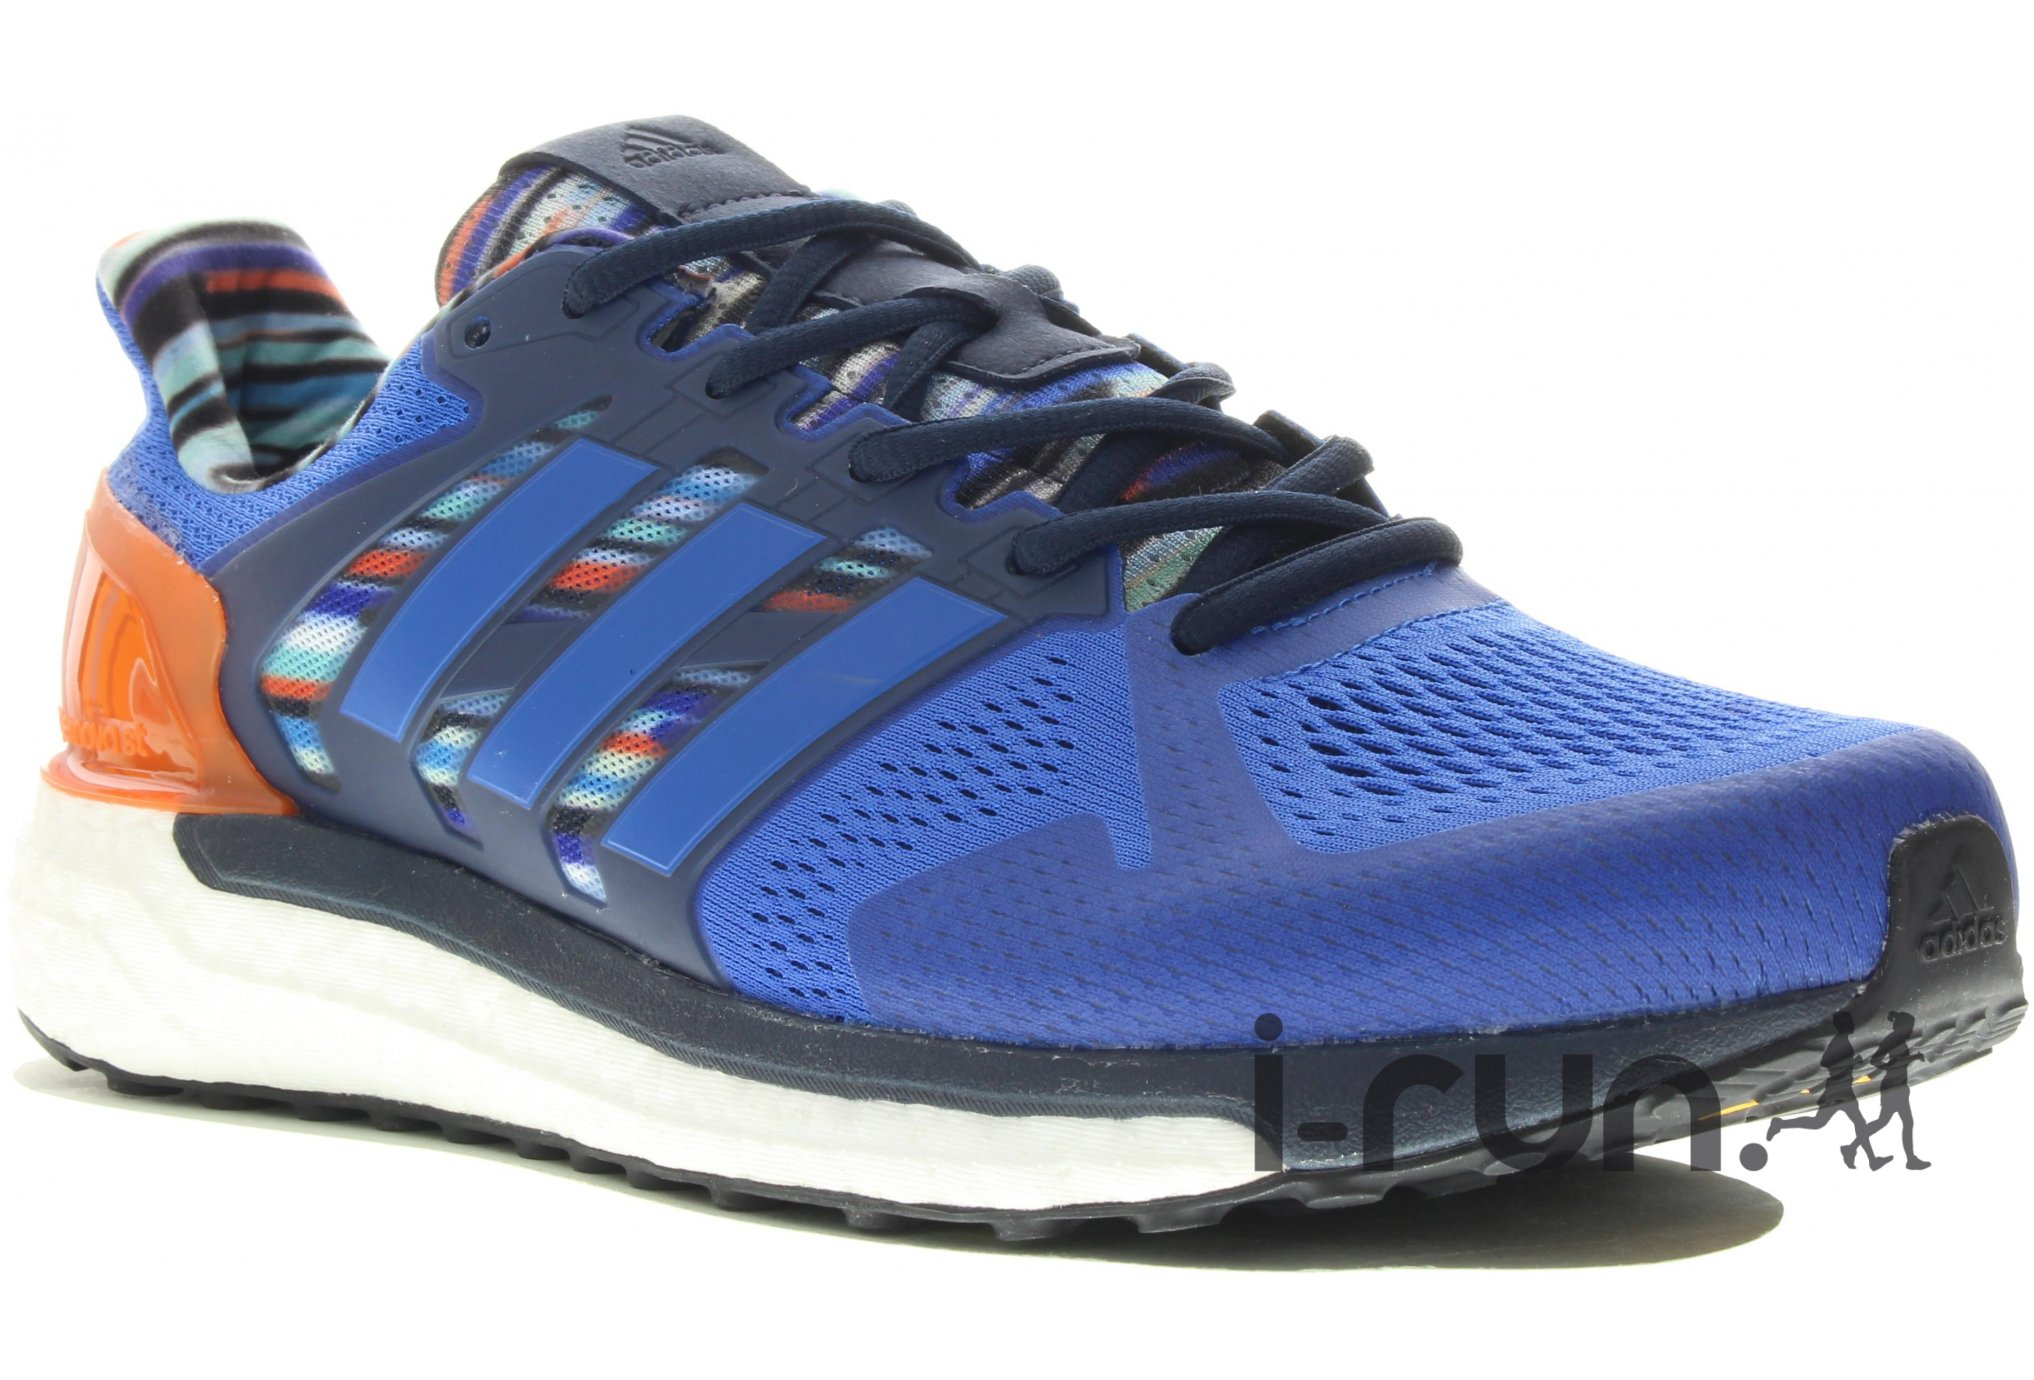 Adidas Supernova stable m chaussures homme